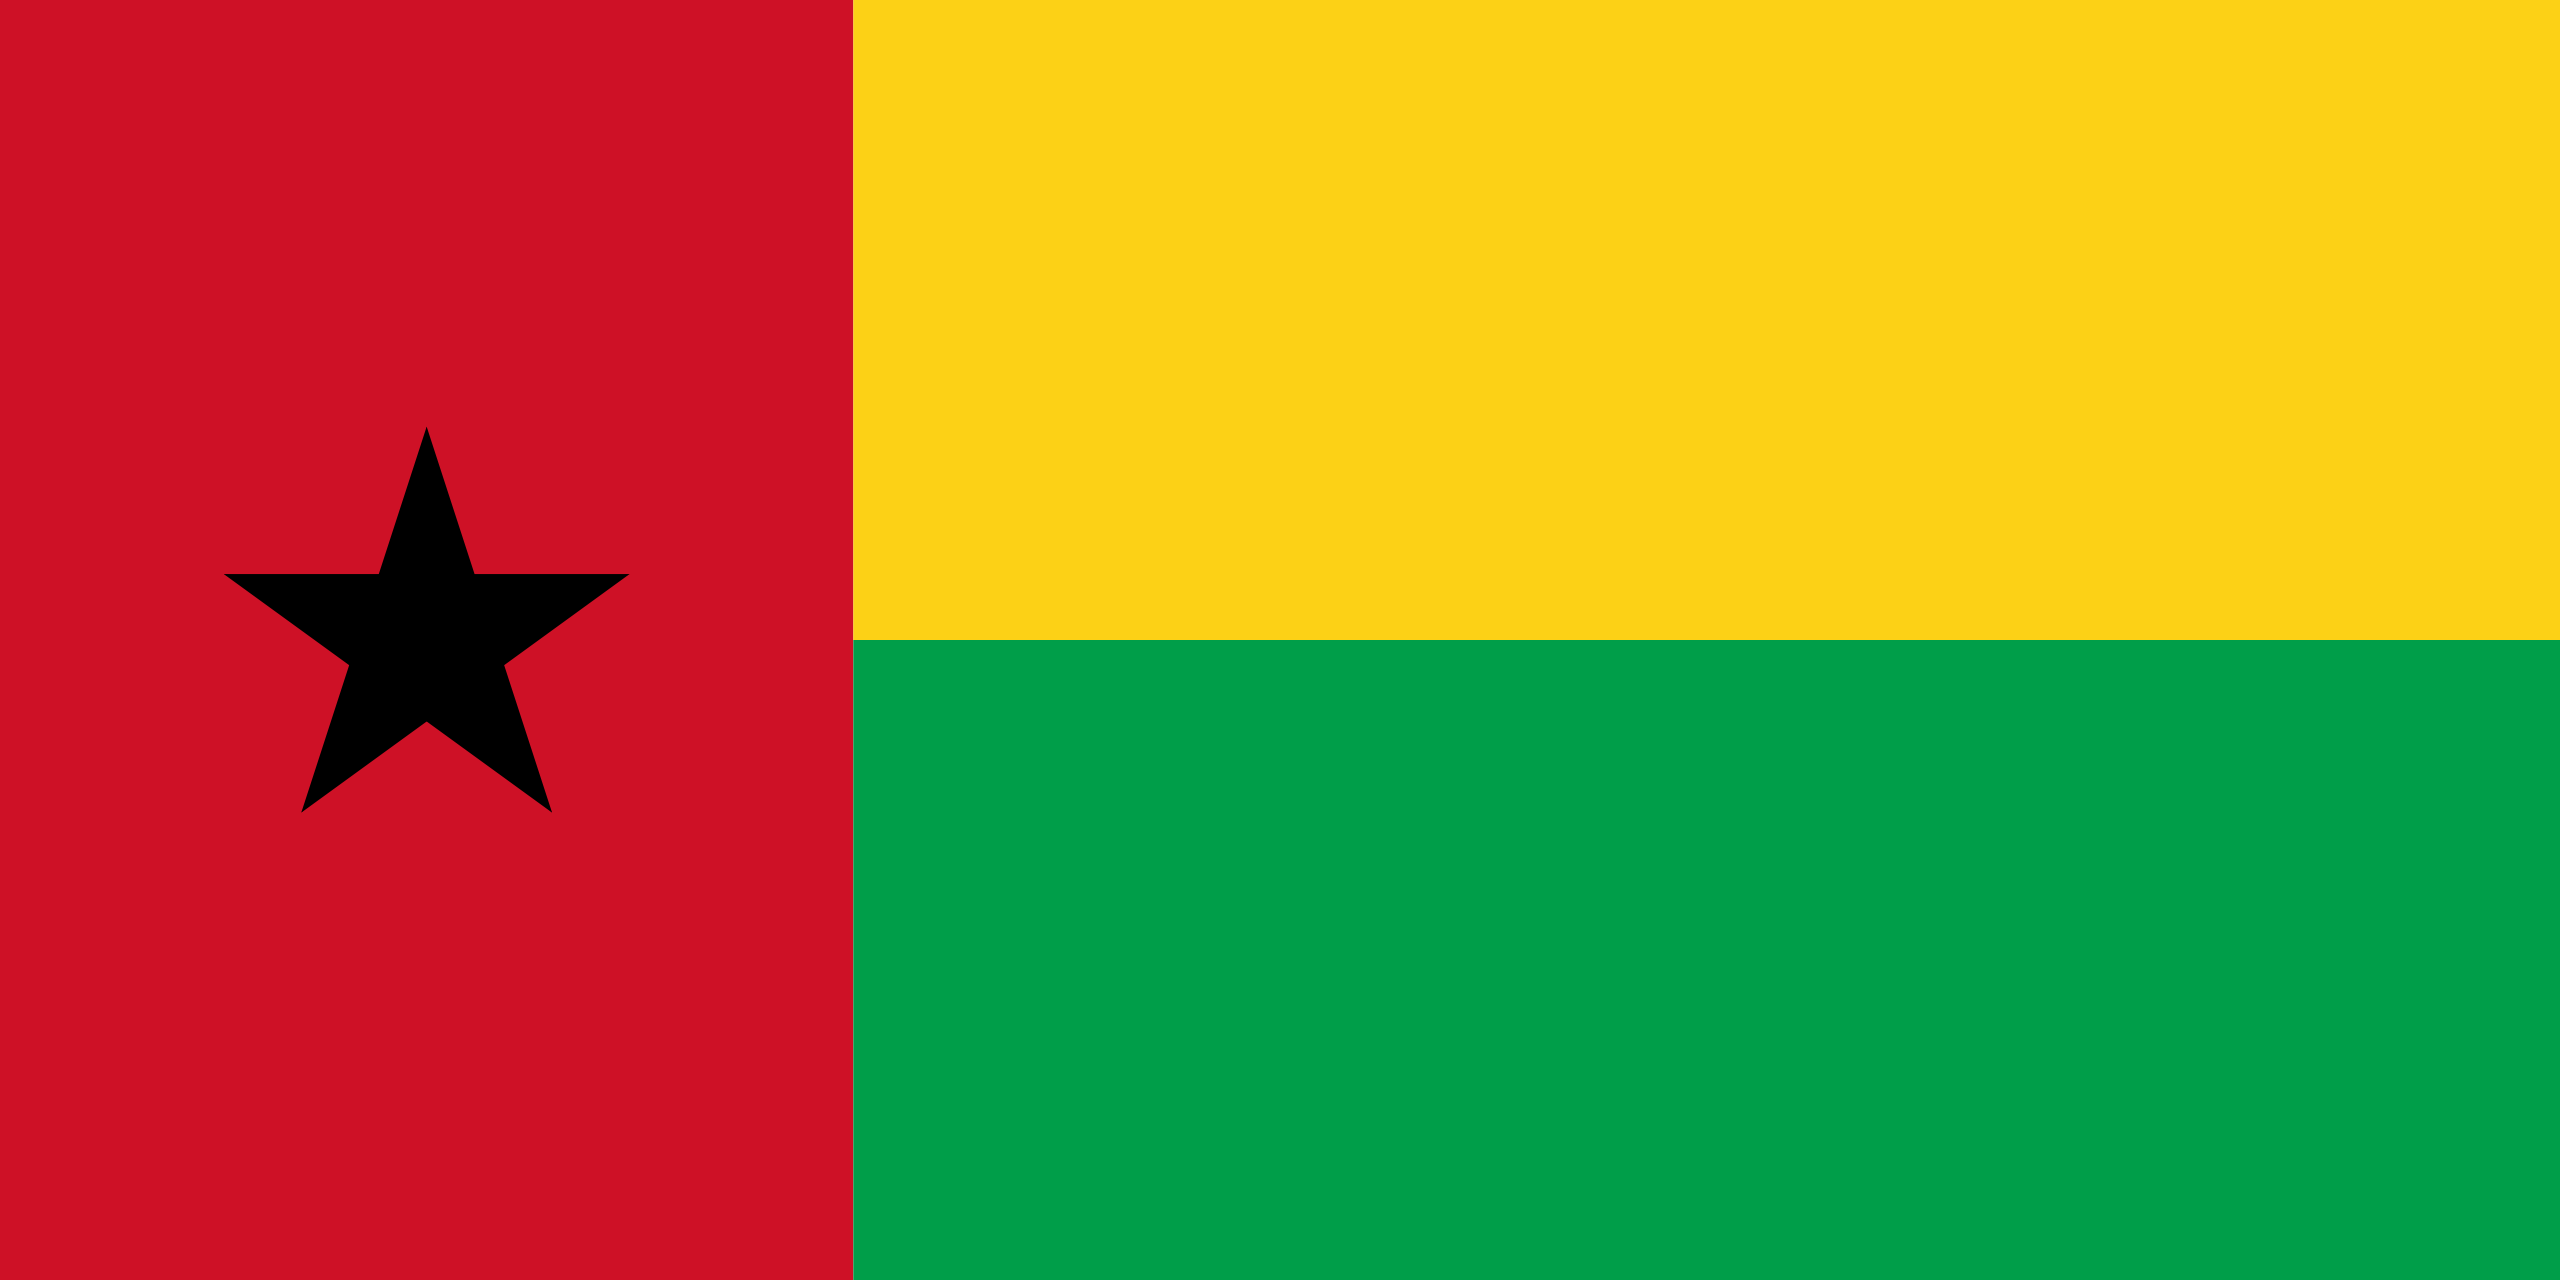 Guinea Bissau Flag and Description